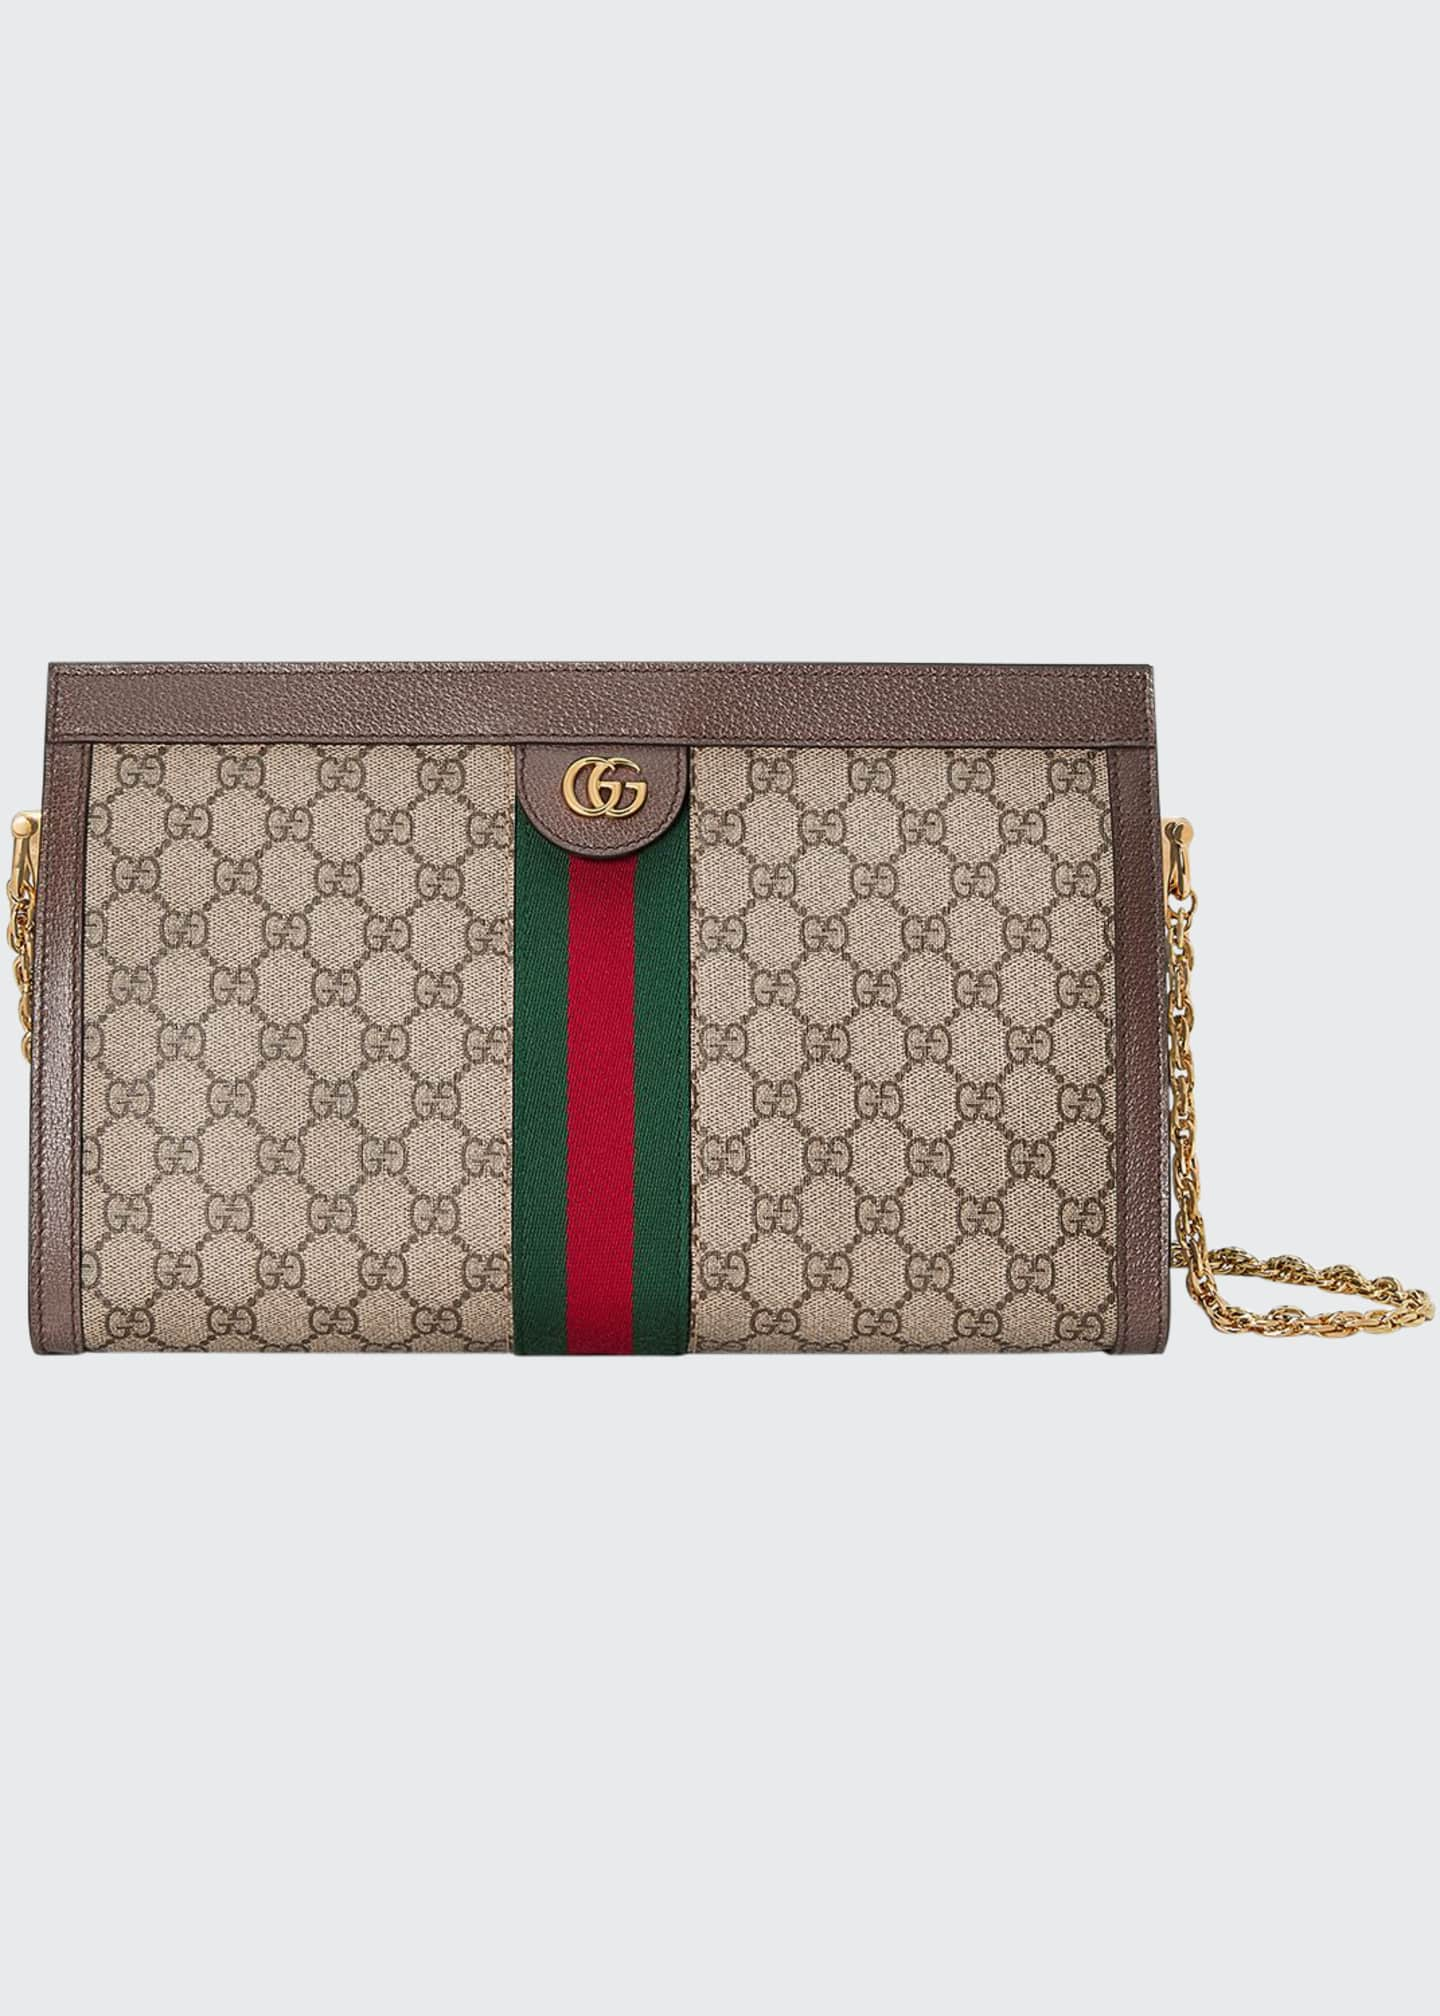 Gucci Linea Dragoni Medium GG Supreme Canvas Chain